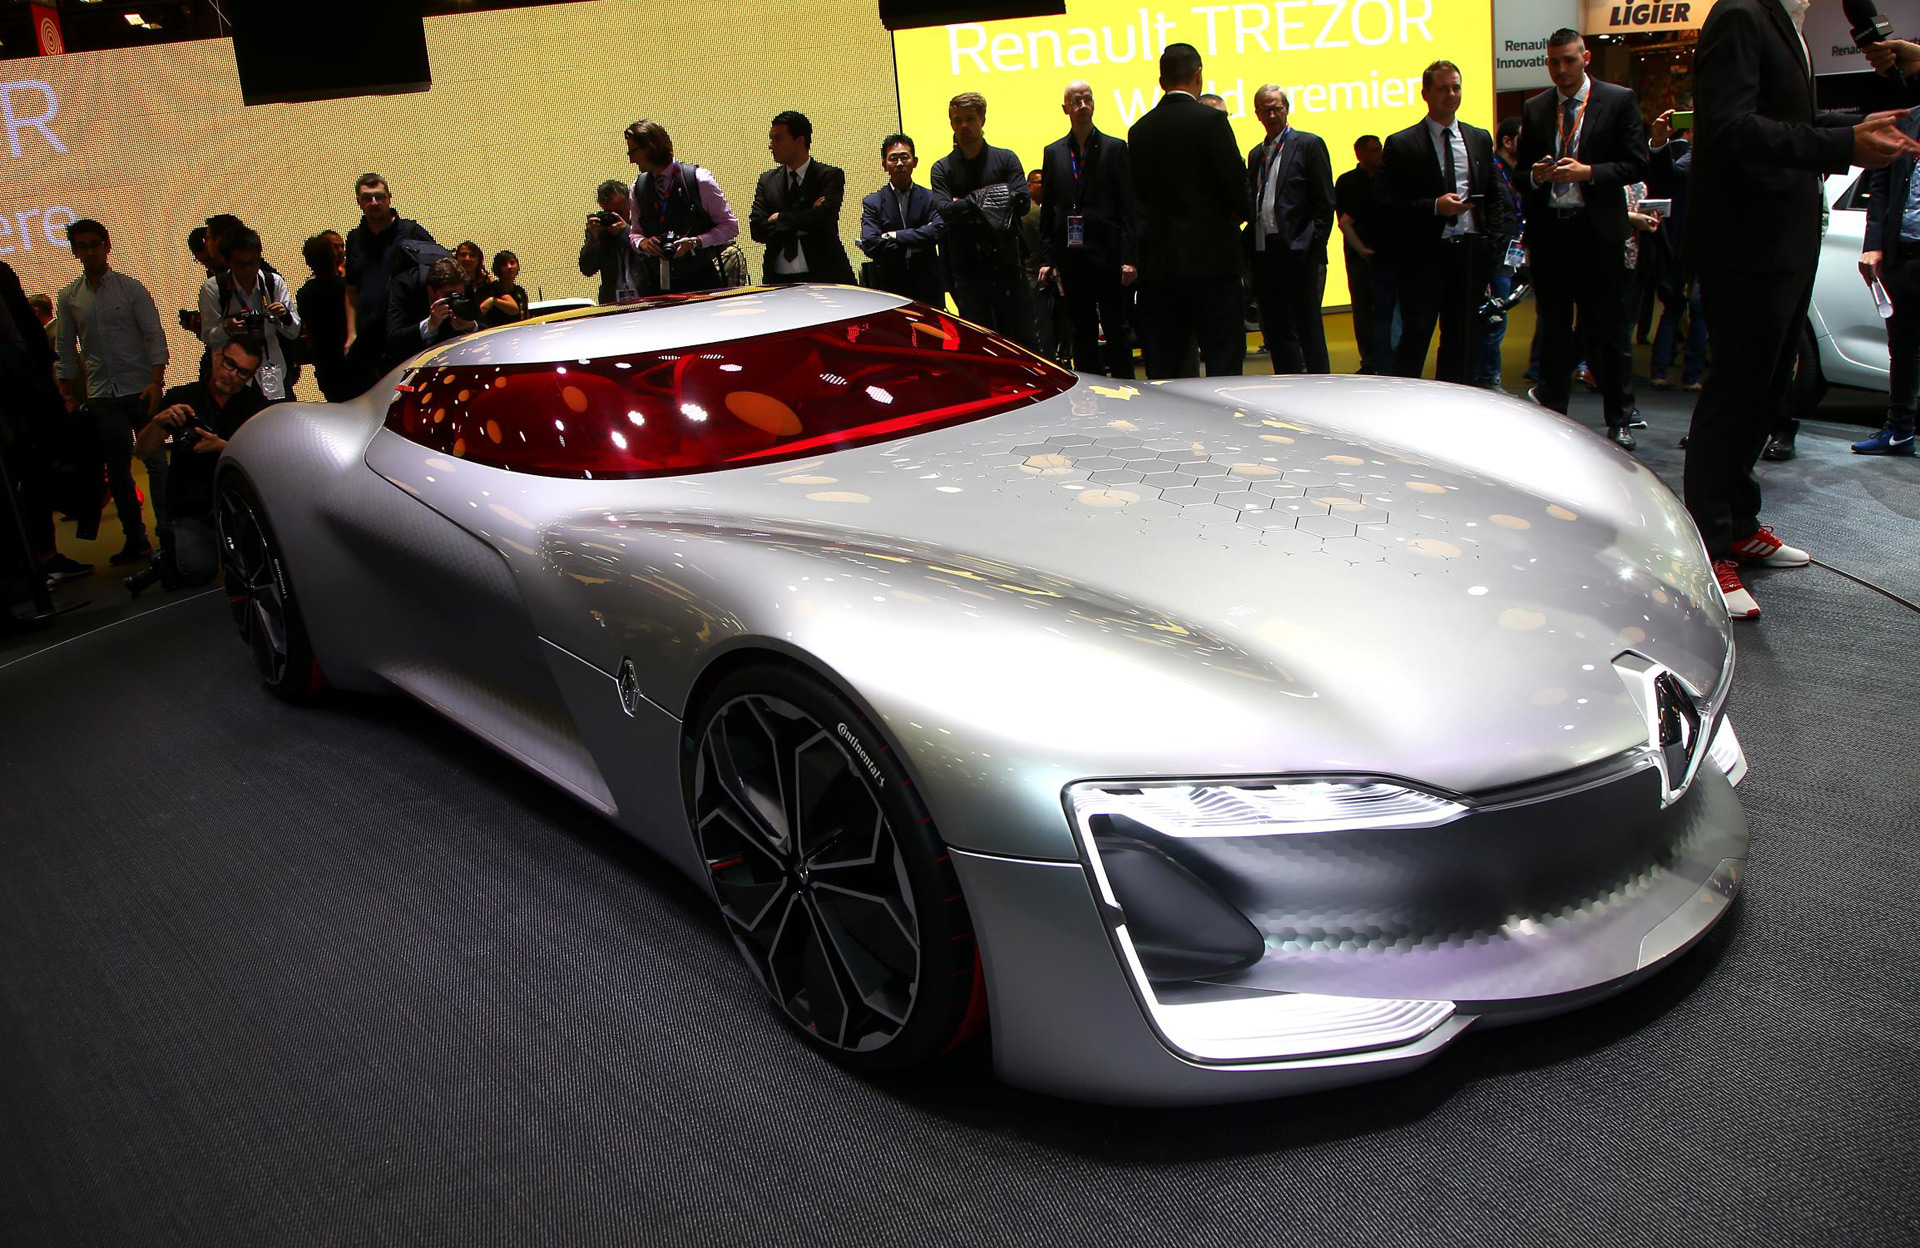 Trezor Concept Is An Electric Gt That Previews Renault S